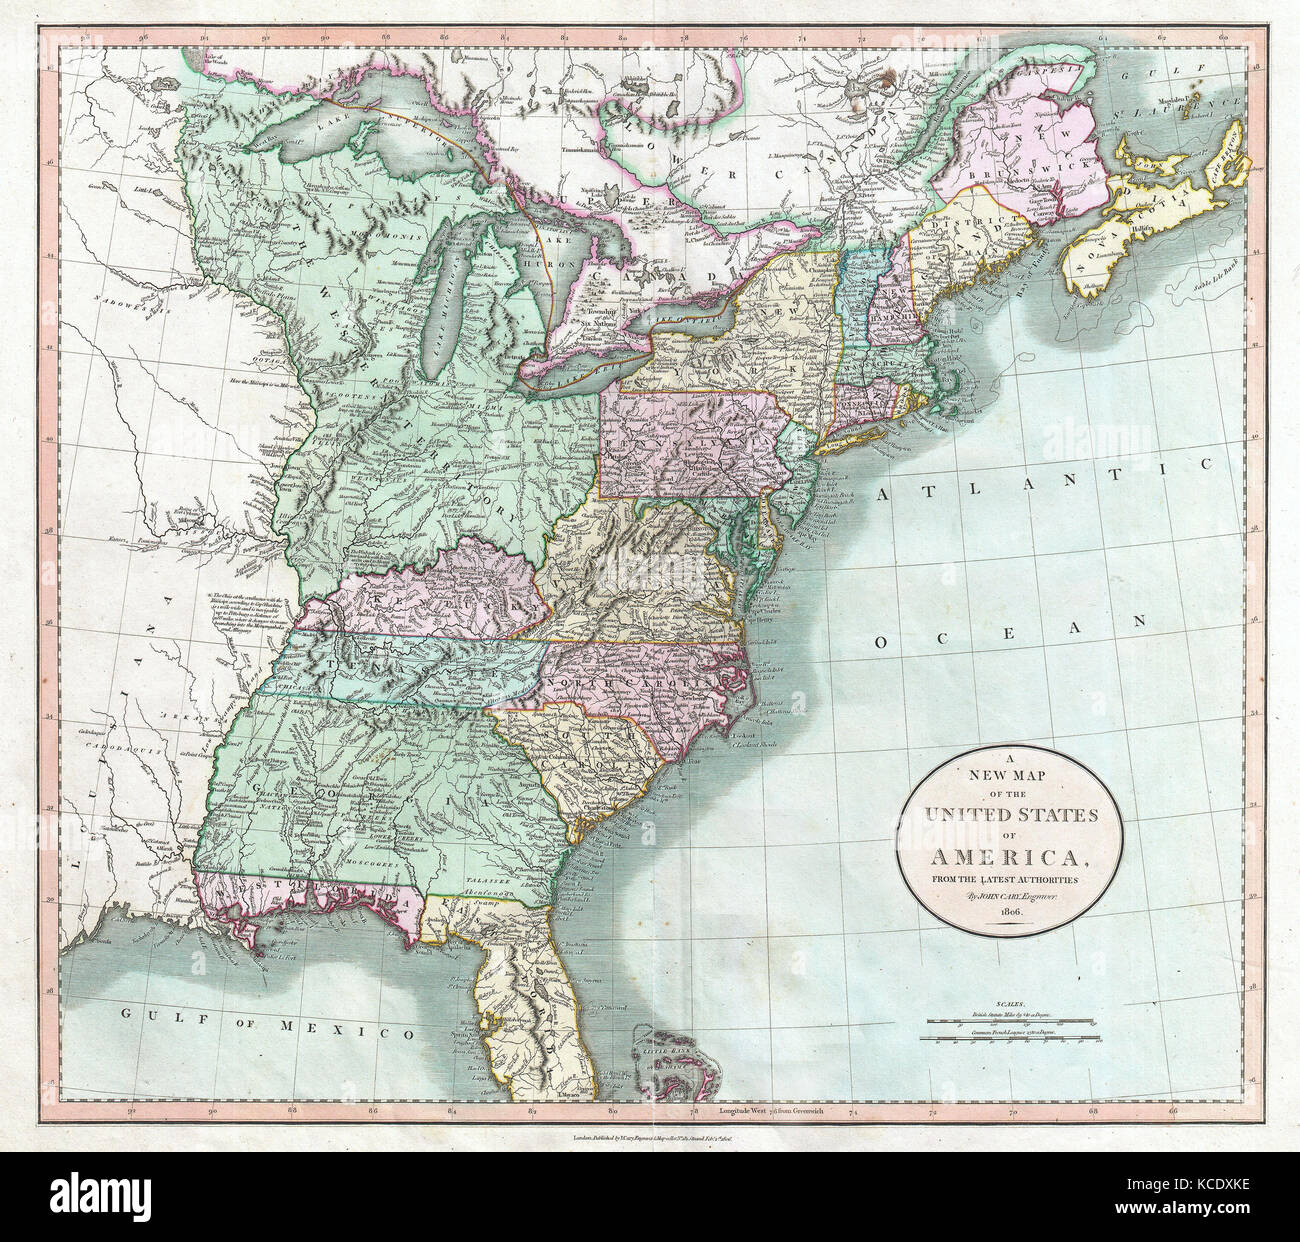 Cary Map Of The United States East Of The Mississippi River - Us map mississippi river